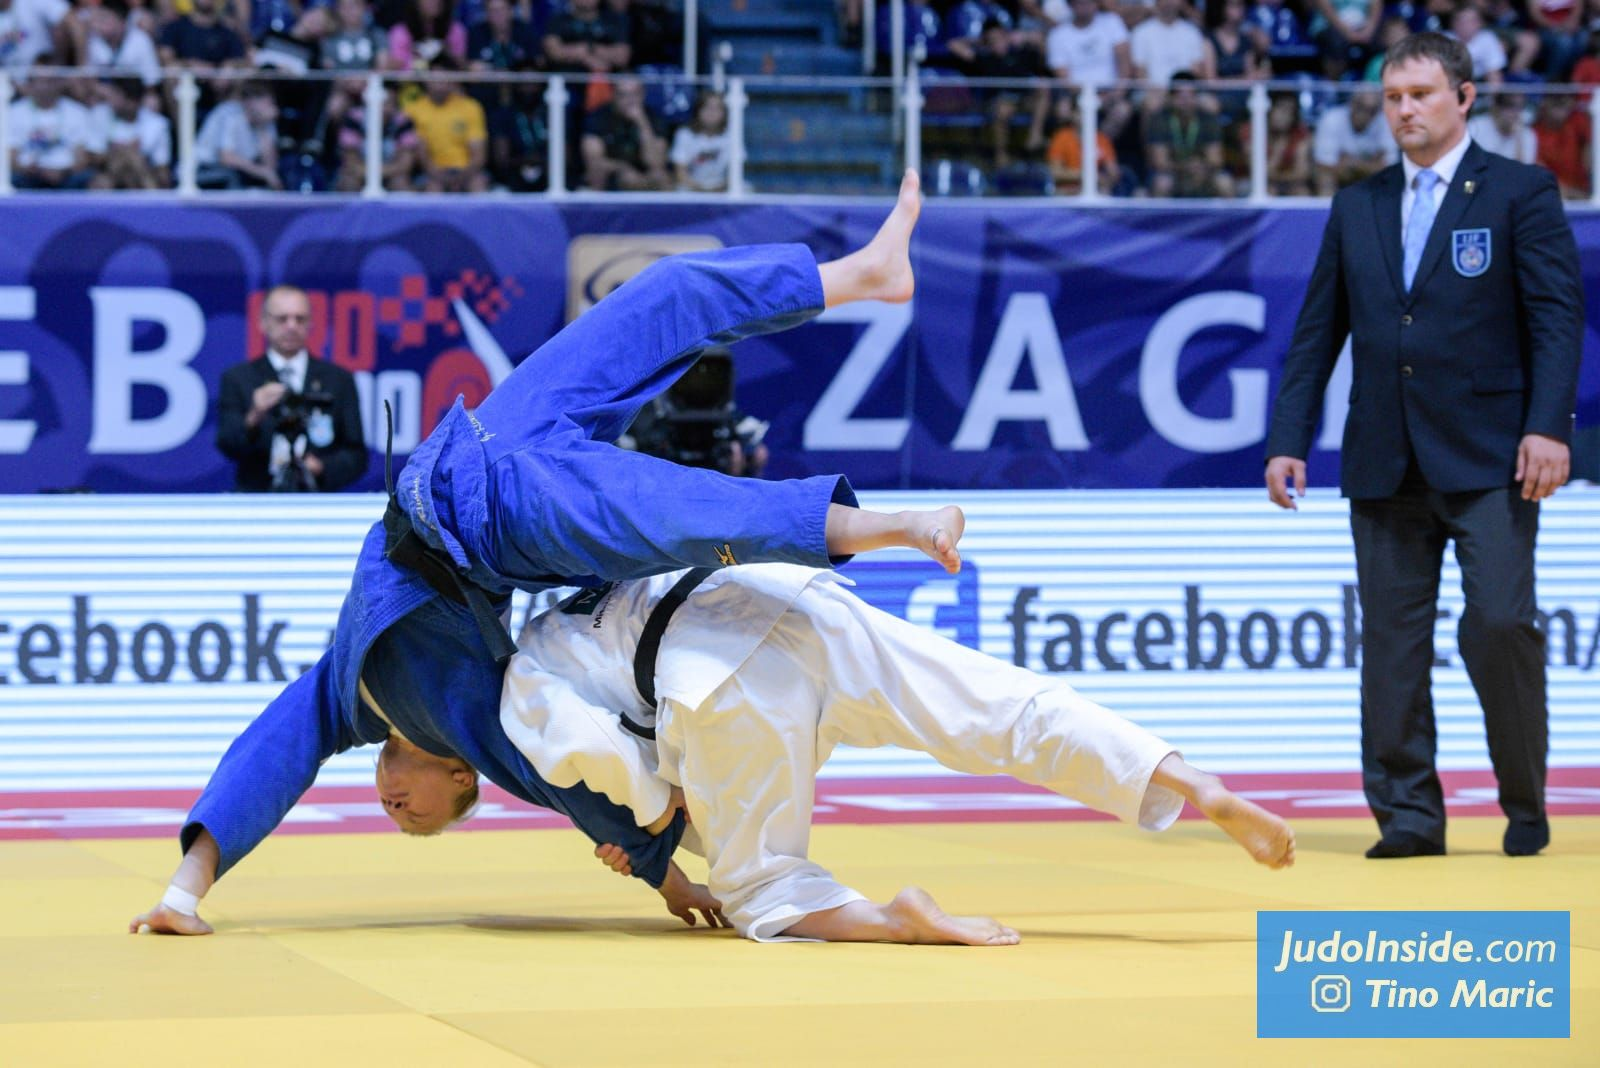 20190726_zagreb_tm_finals_day1_57_jessica_klimkait51